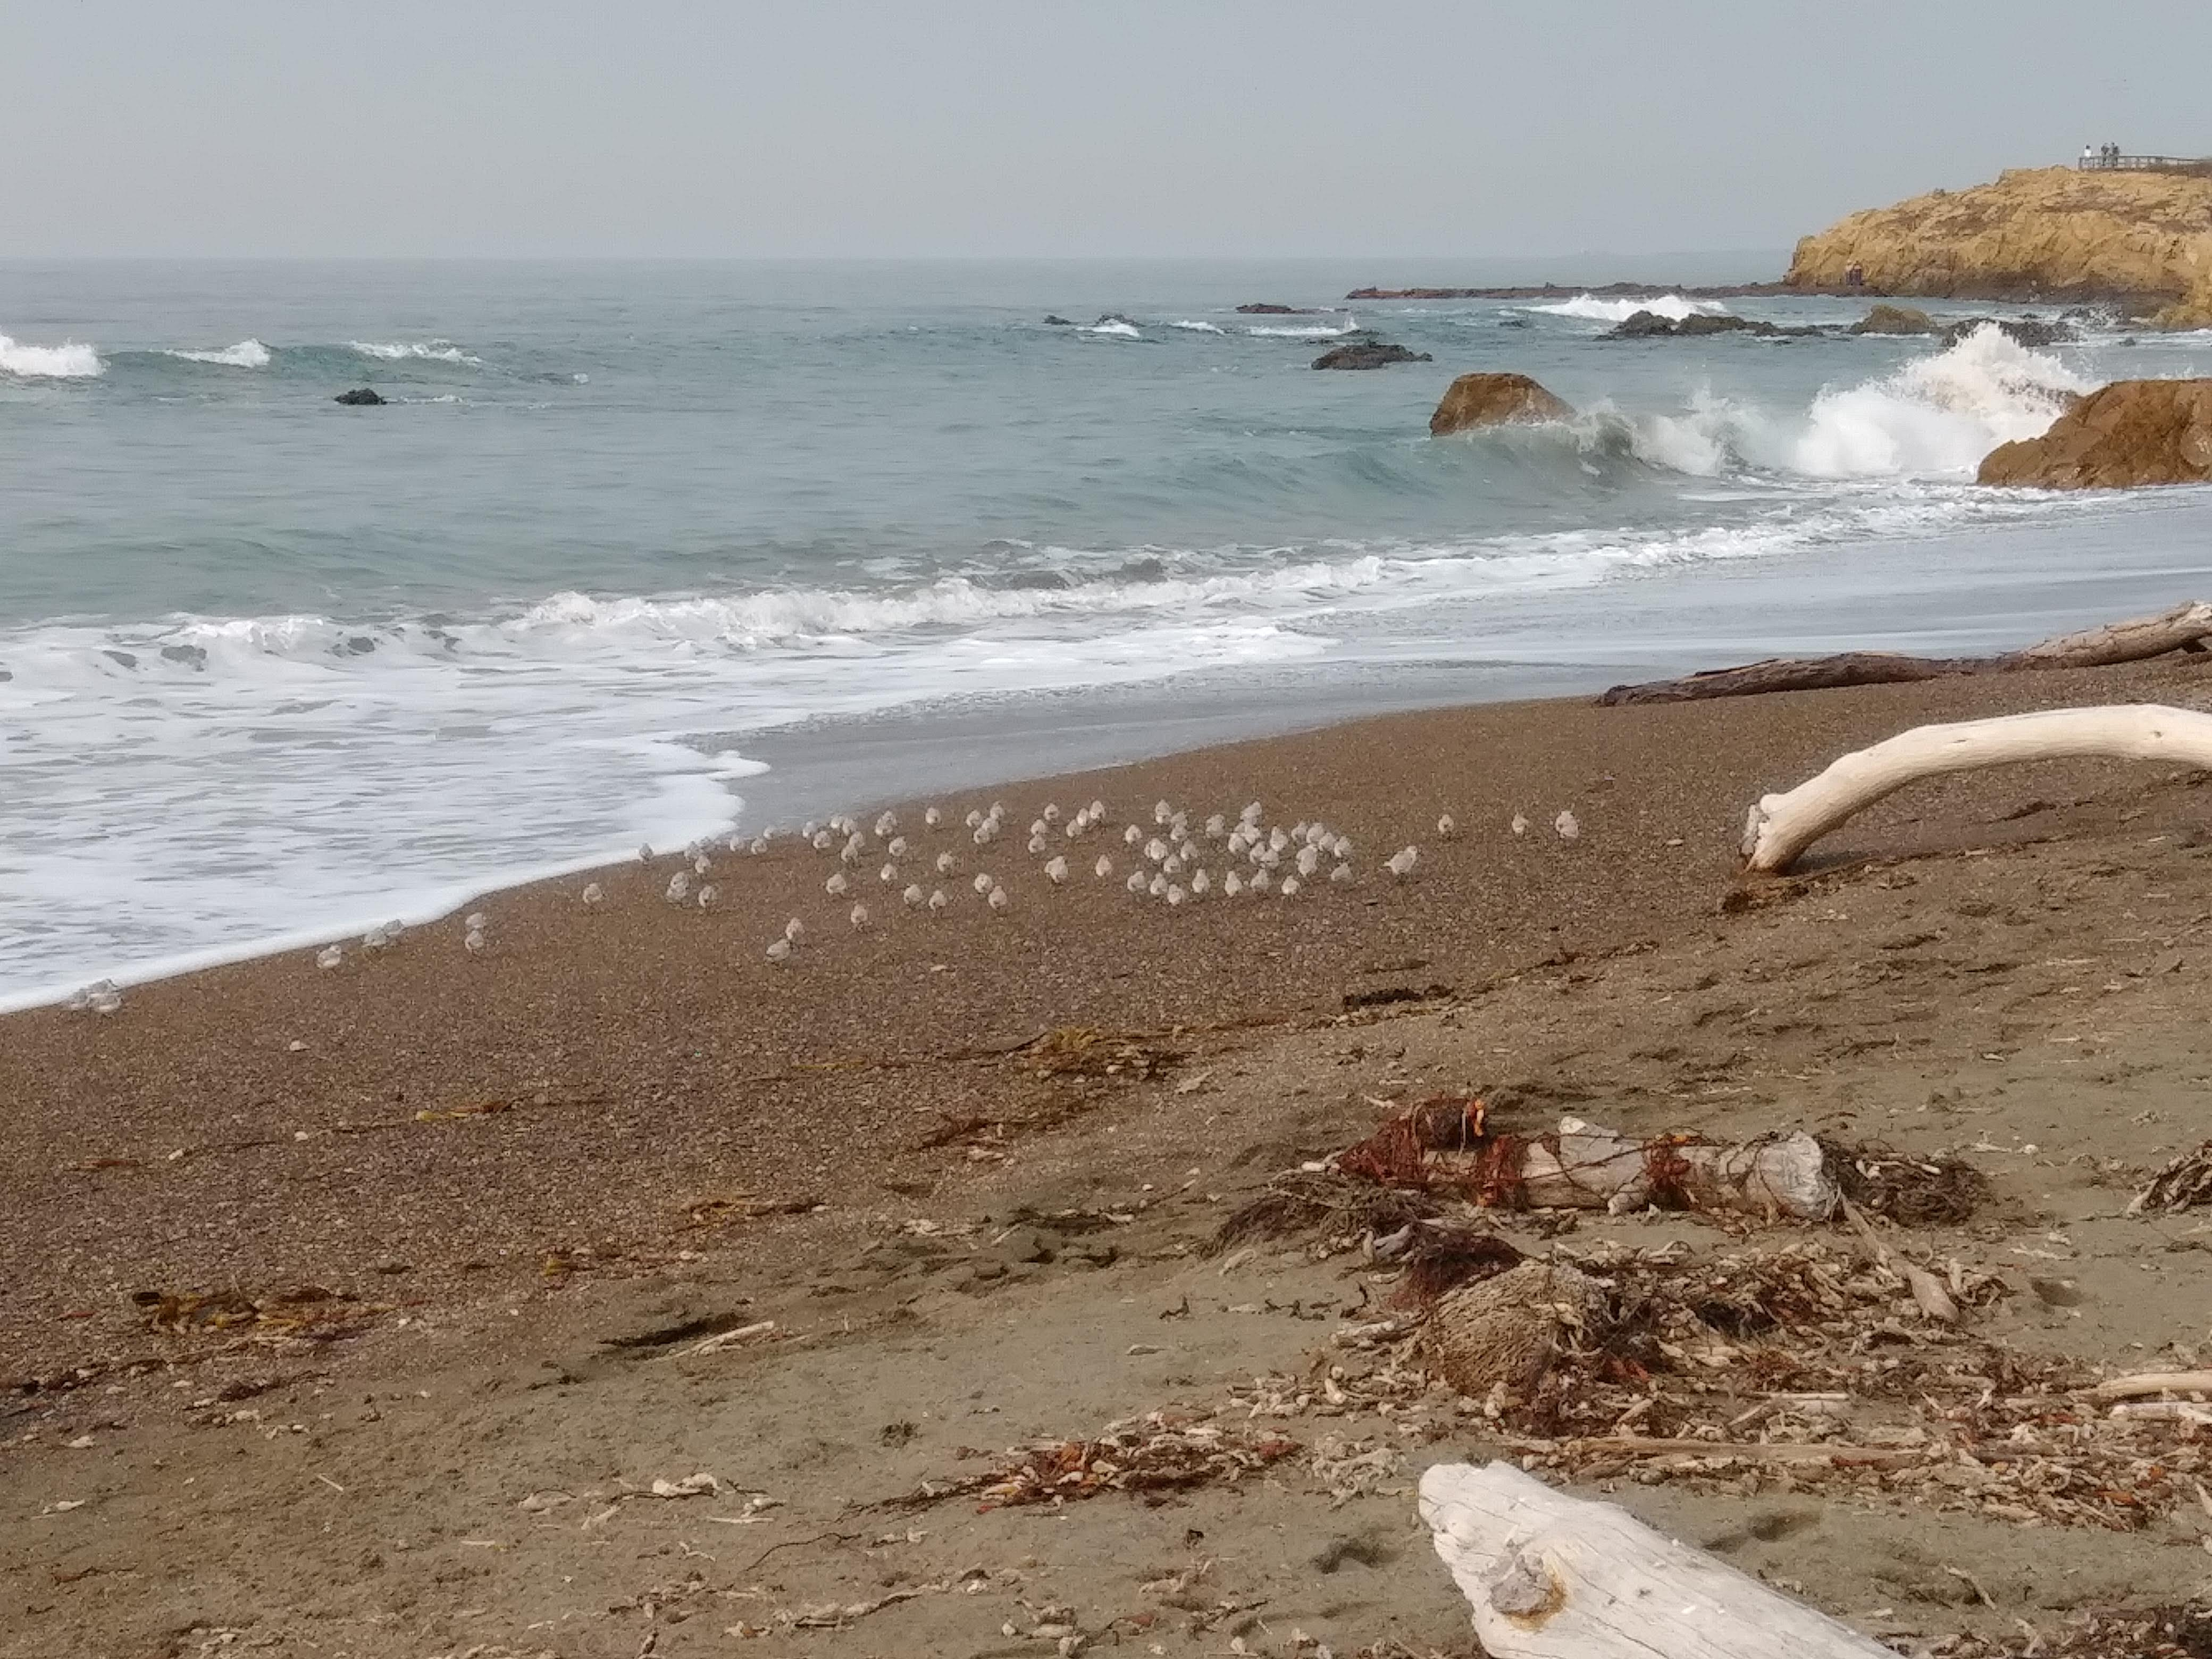 Road trip to the California Central Coast : Part 2